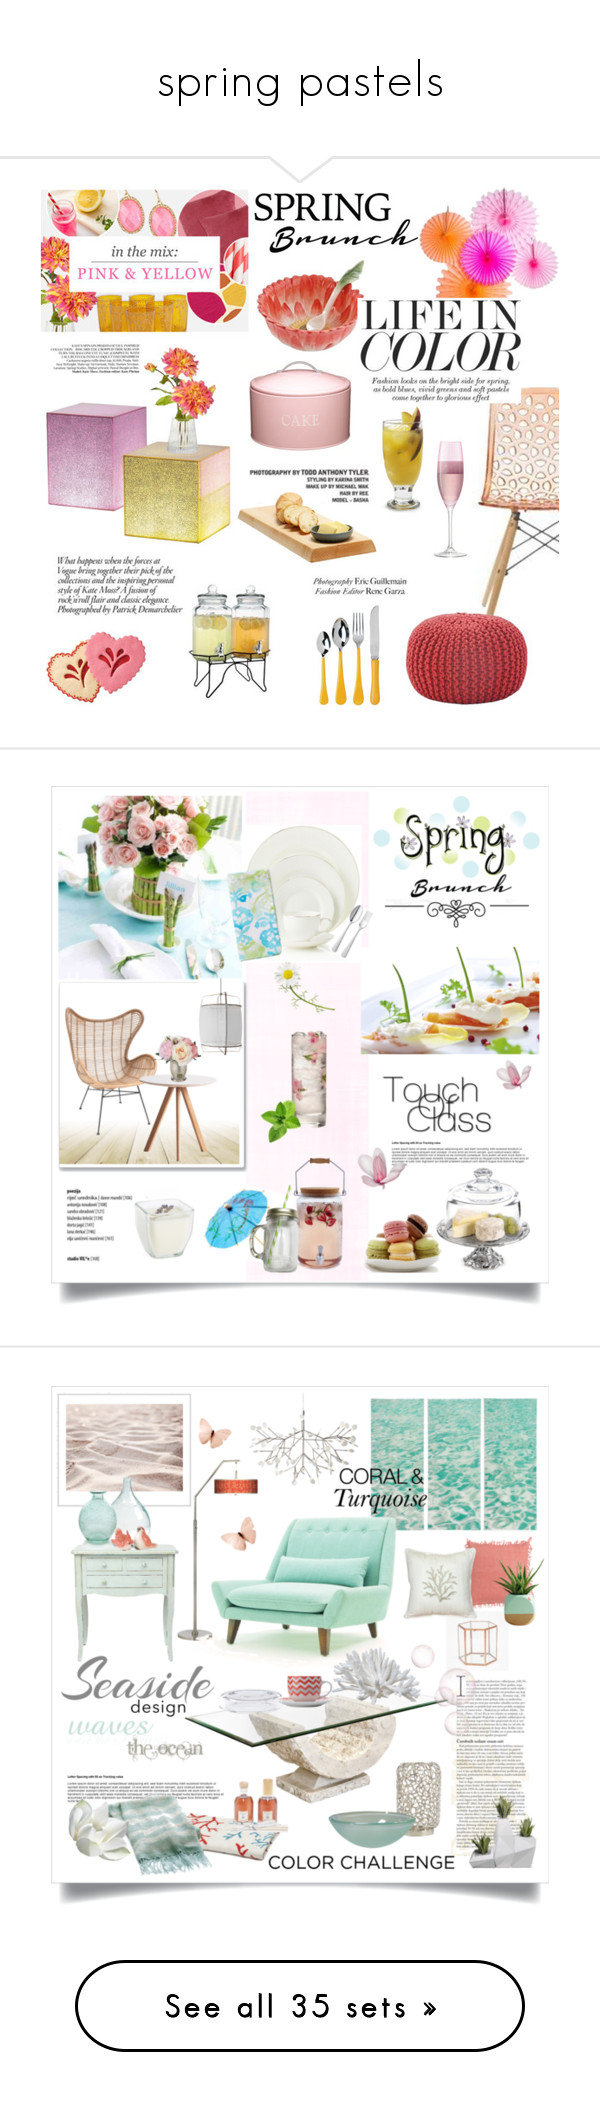 """""""spring pastels"""" by cityzencharms ❤ liked on Polyvore featuring interior, interiors, interior design, home, home decor, interior decorating, LSA International, Bormioli Rocco, Teroforma and Kitchen Craft"""